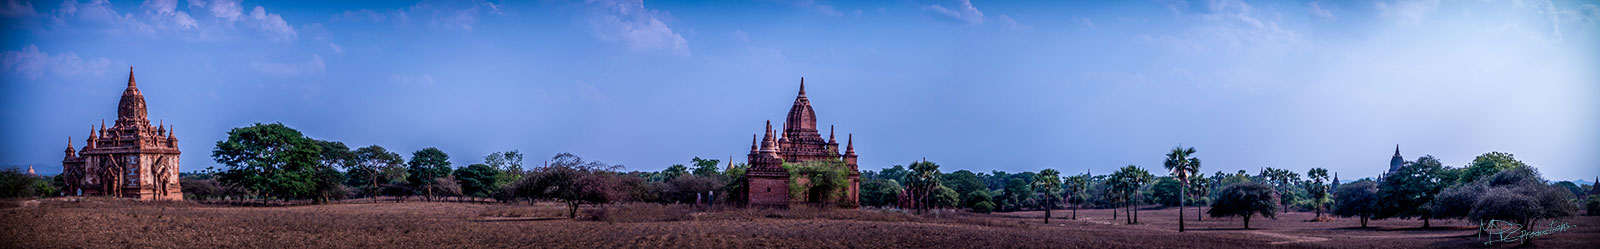 BAGAN! A city known exclusively for its epic temples.